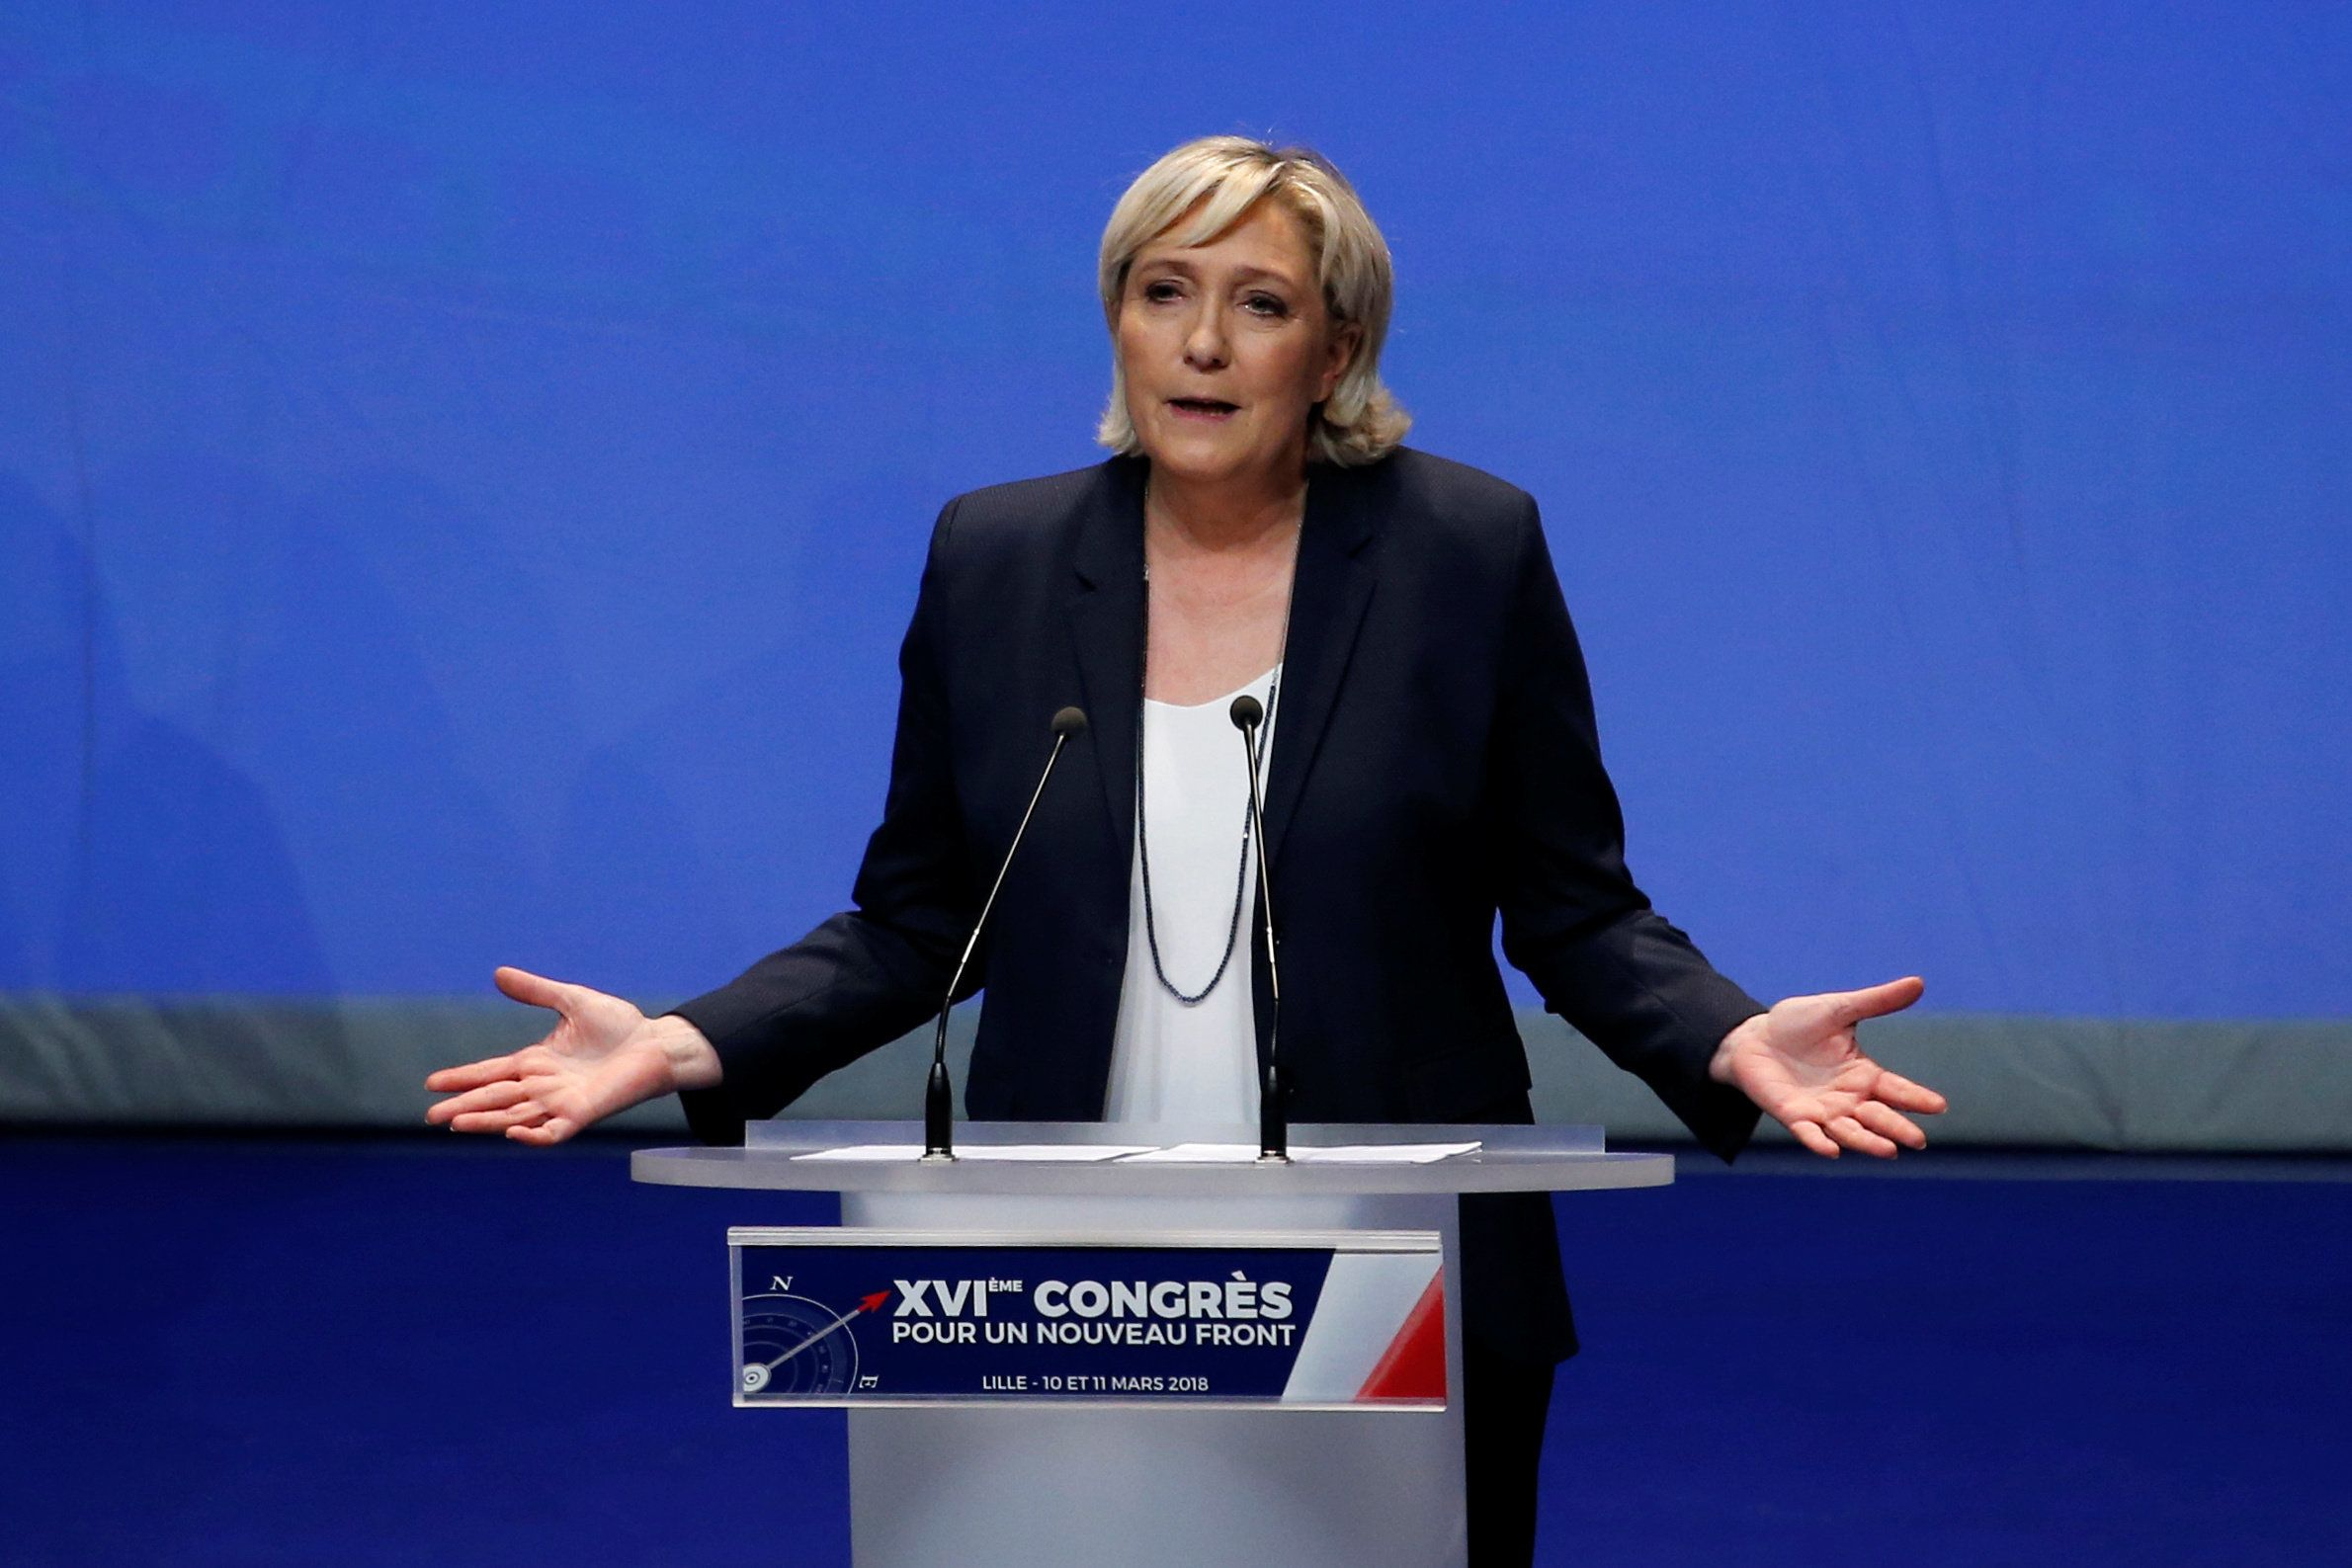 Marine Le Pen, National Front  (FN) political party leader, announces the new staff, during National Front's congress in Lille, France, March 11, 2018. REUTERS/Pascal Rossignol